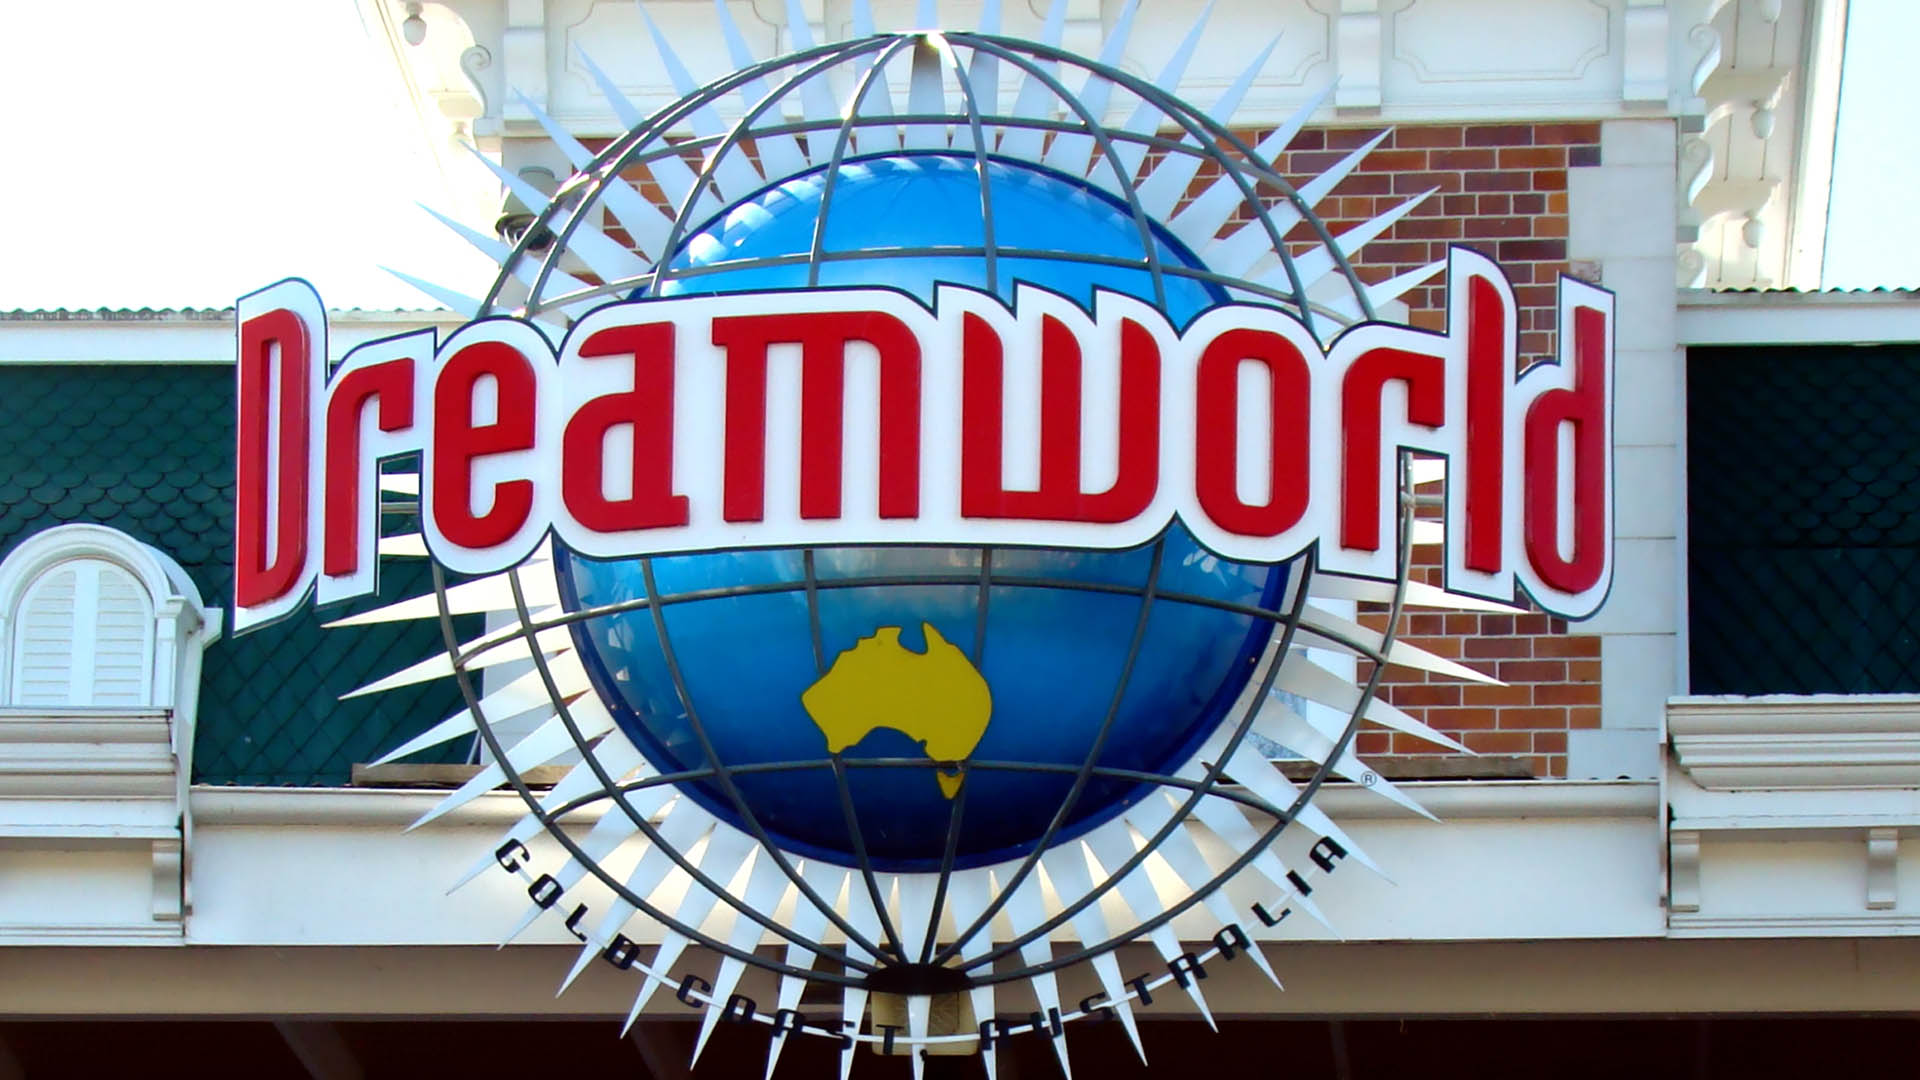 Ardent Leisure Group (ASX:ALG) prosecution in relation to the 2016 Dreamworld tragedy